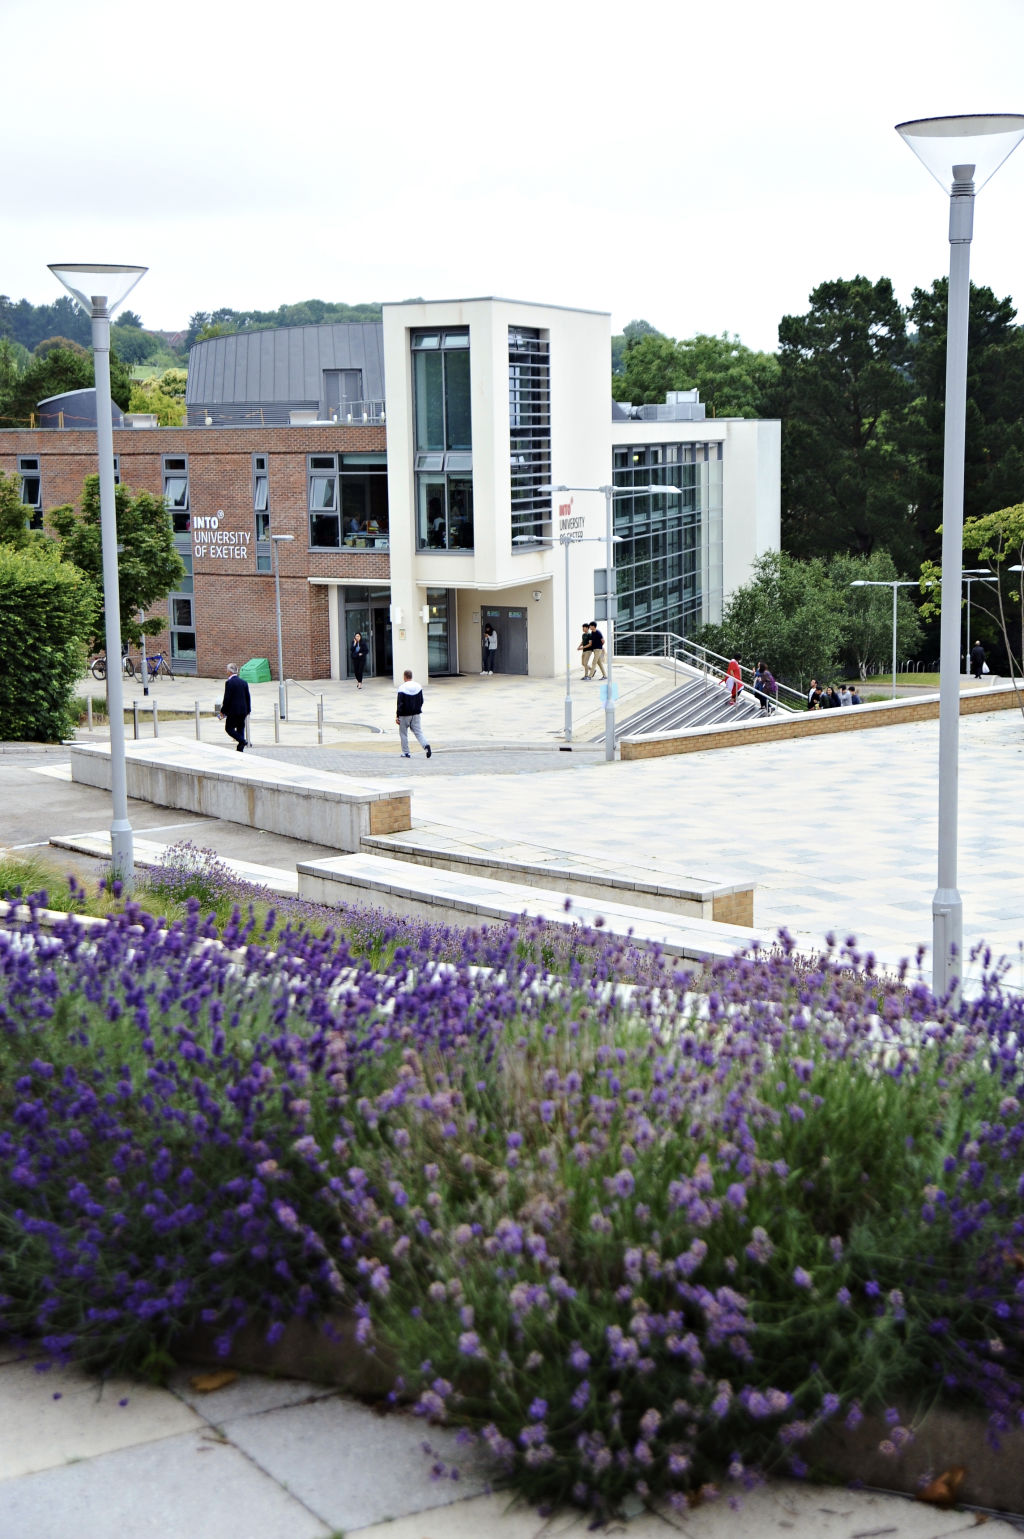 INTO University of Exeter Centre building